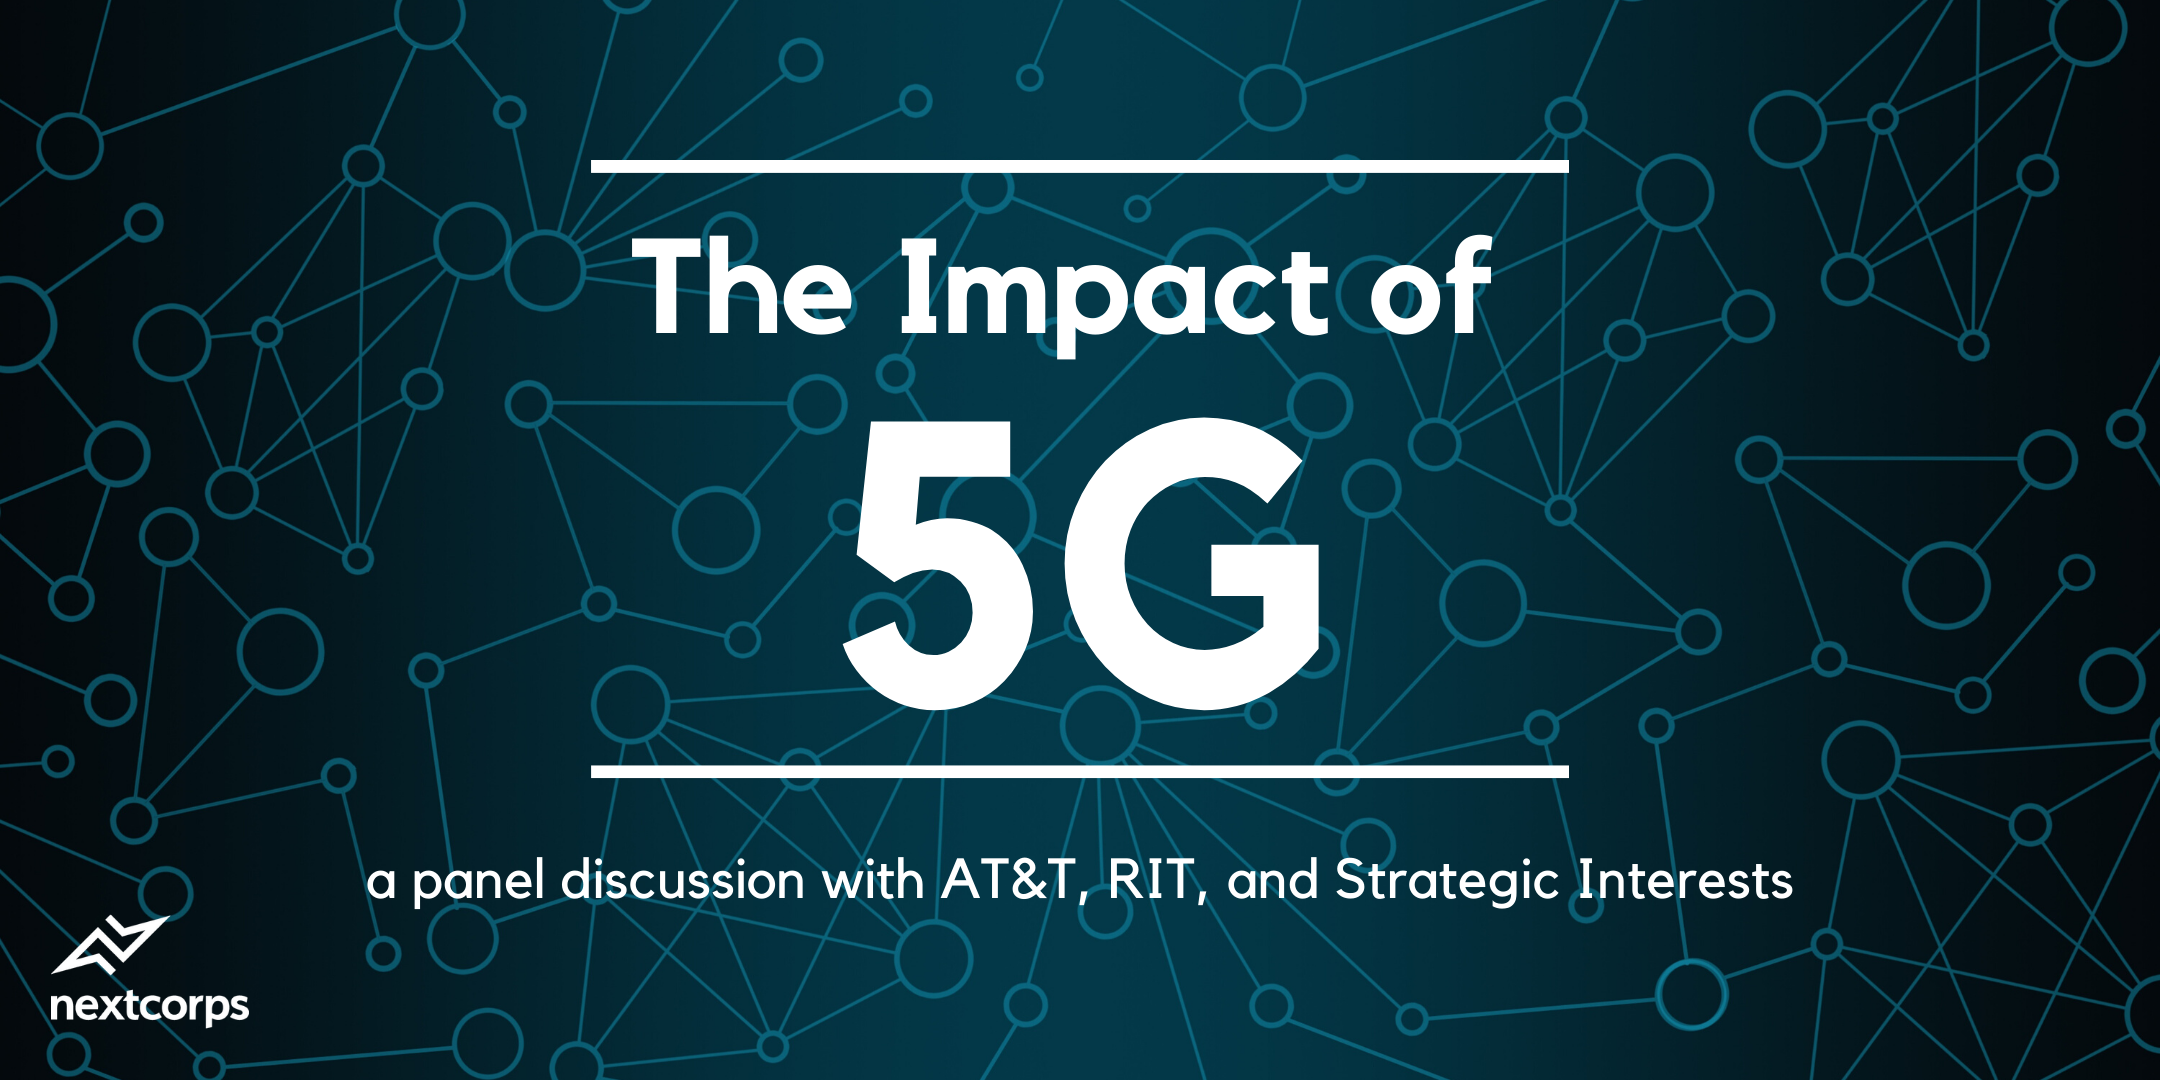 The Impact of 5G: Panel Discussion